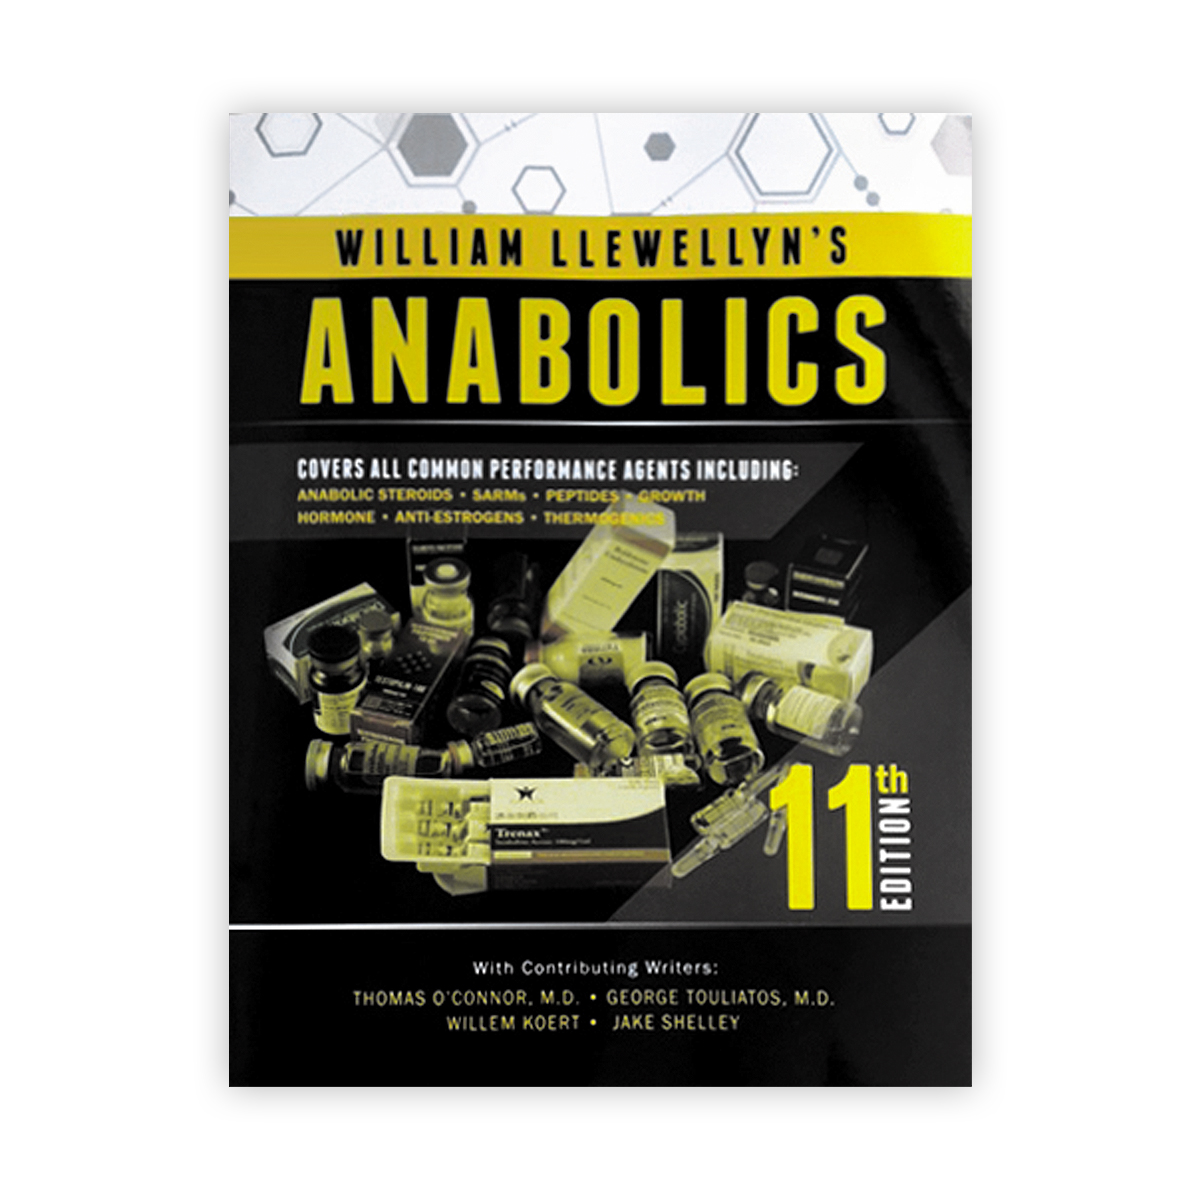 Anabolics 11th Edition by William Llewellyn (Temp out of stock)